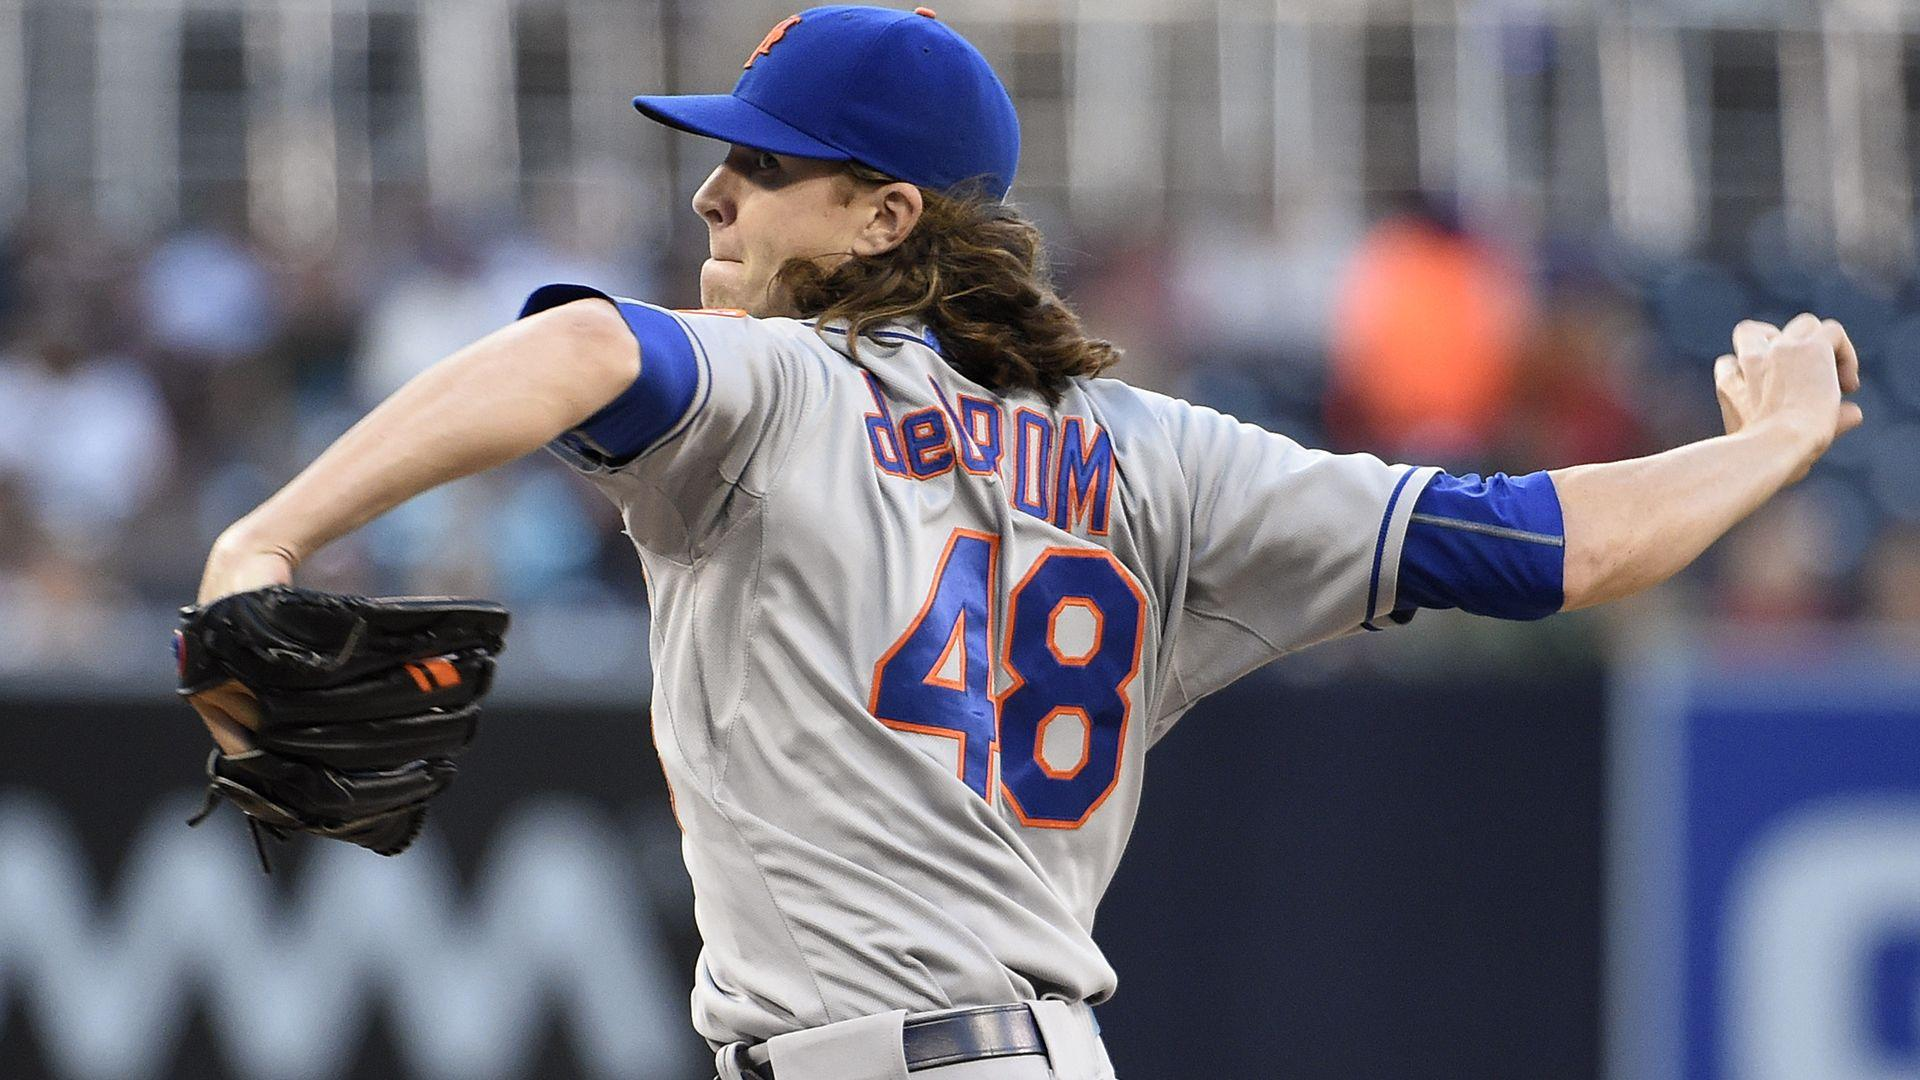 Jacob deGrom injury update: Mets ace cleared to make next start